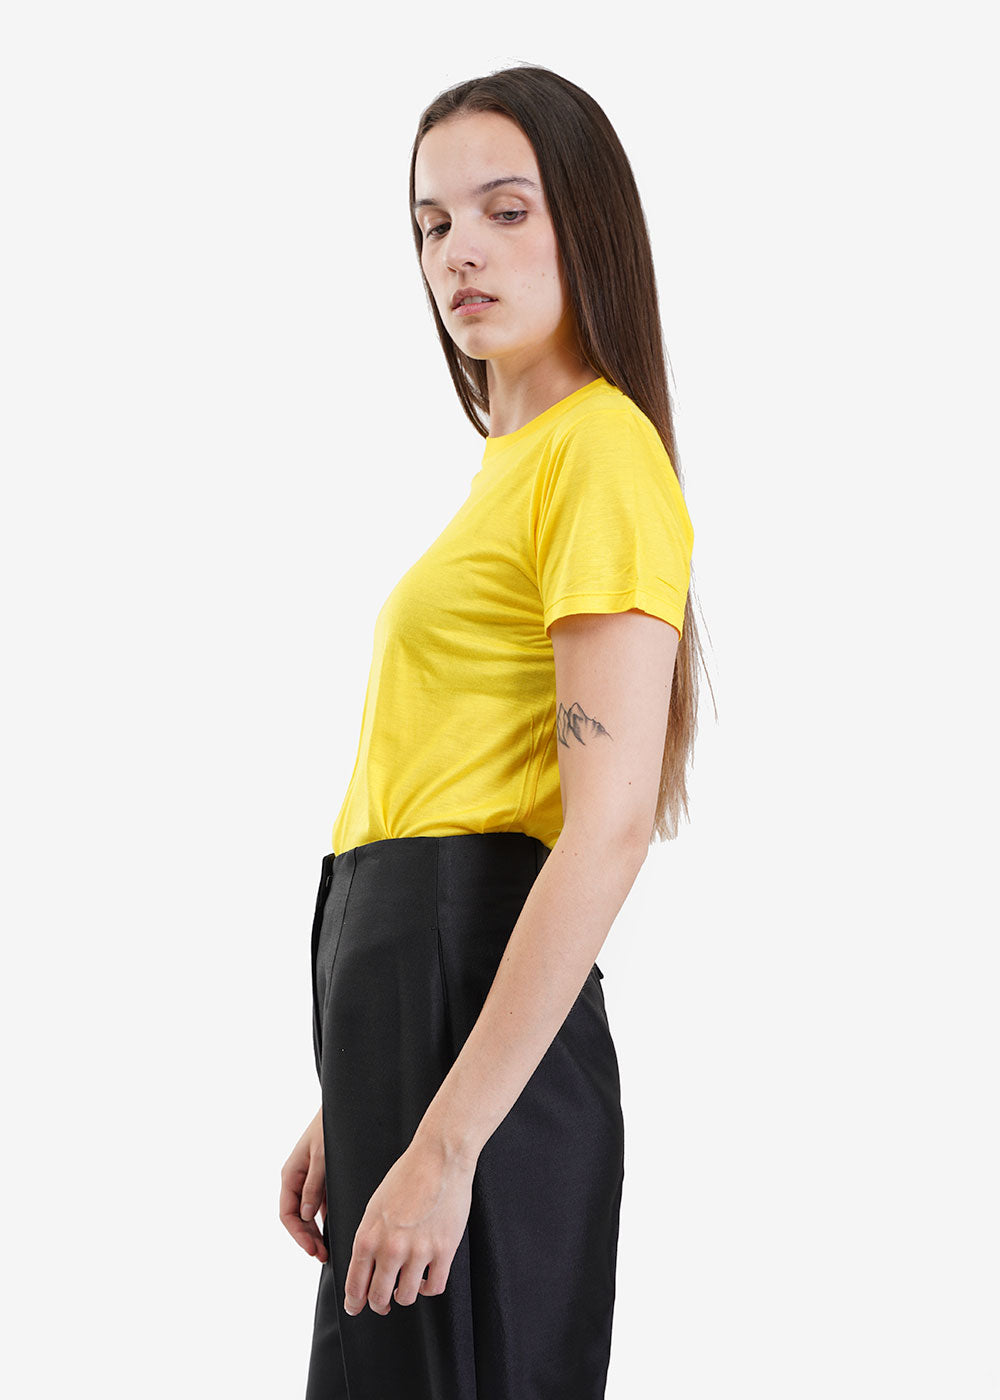 Braid Yellow Tee Shirt - New Classics Studios